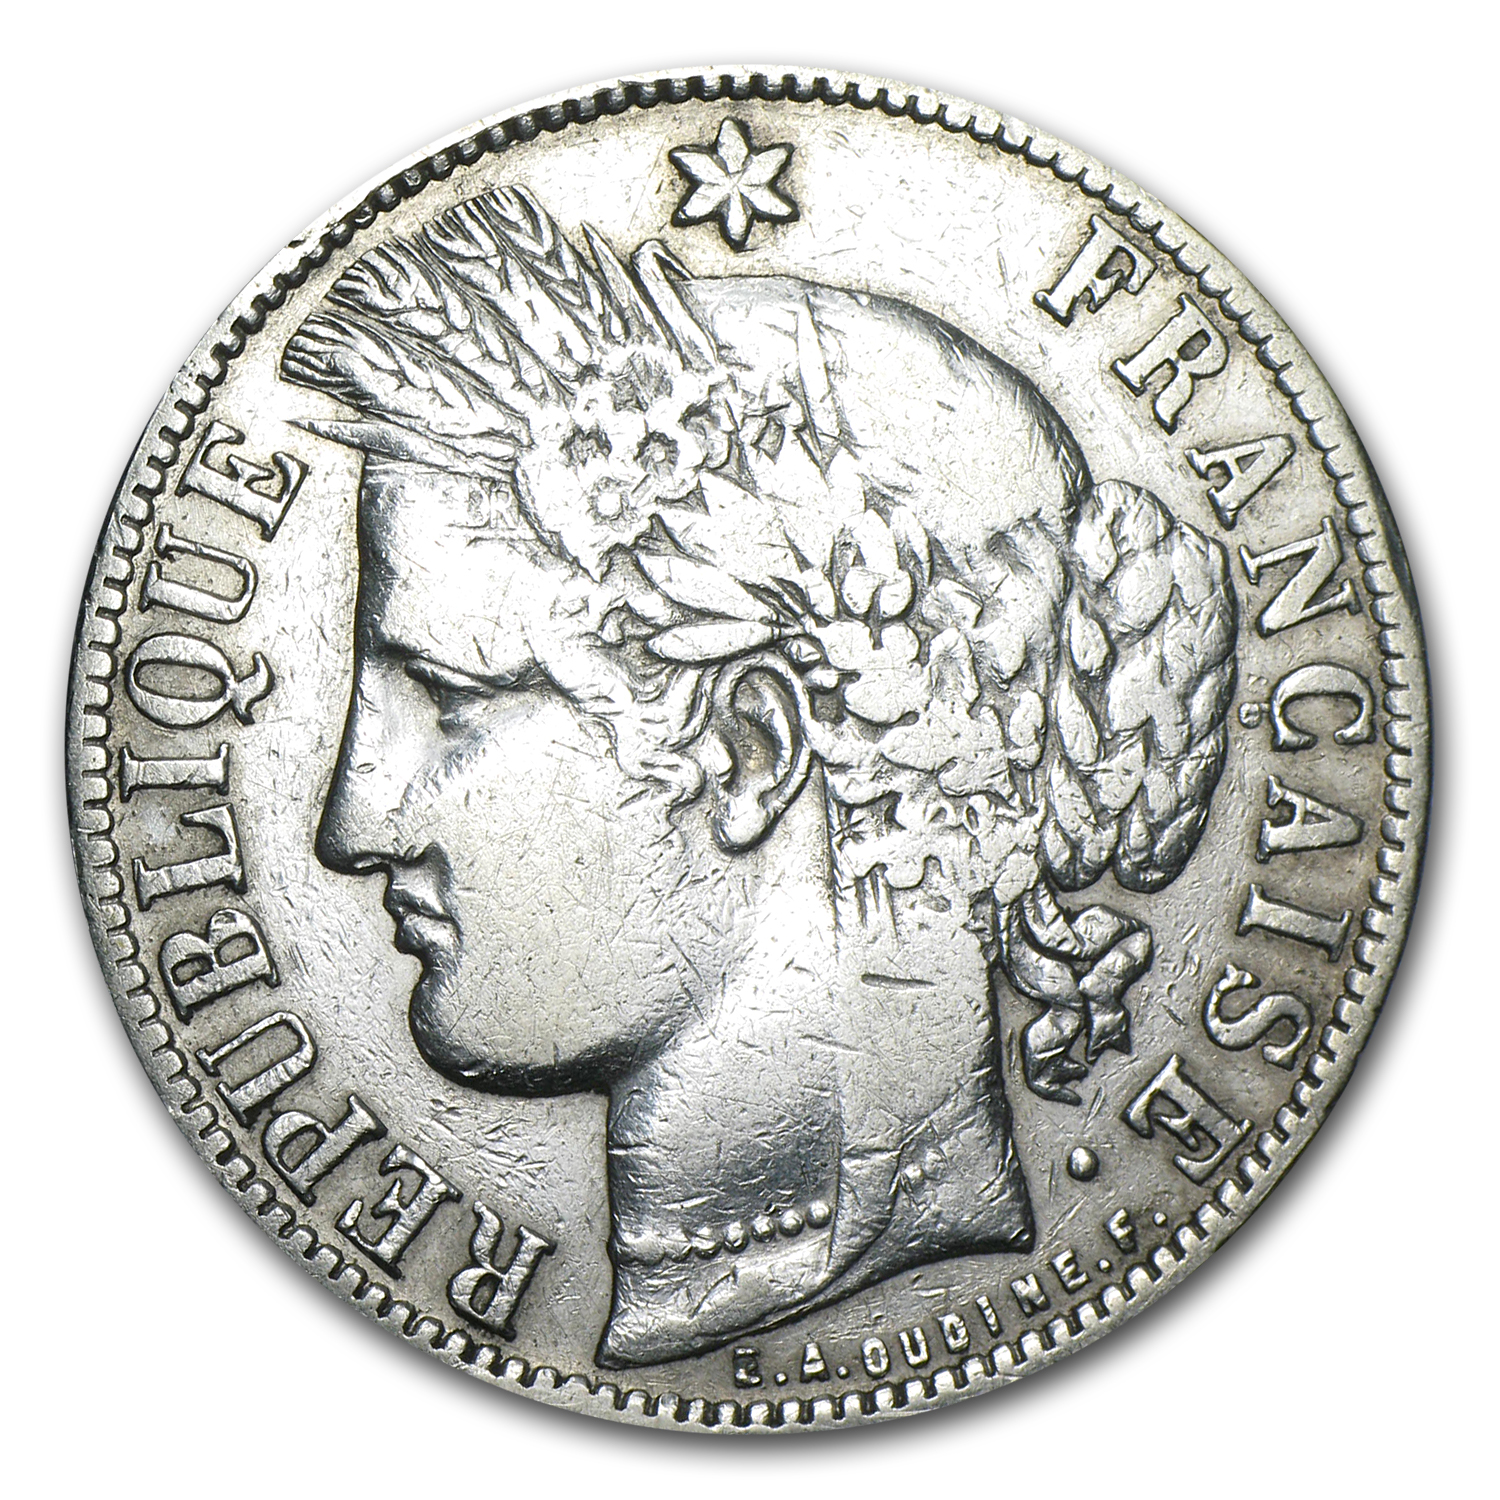 1870-1871 France Silver 5 Francs Ceres Head No Motto Avg Circ